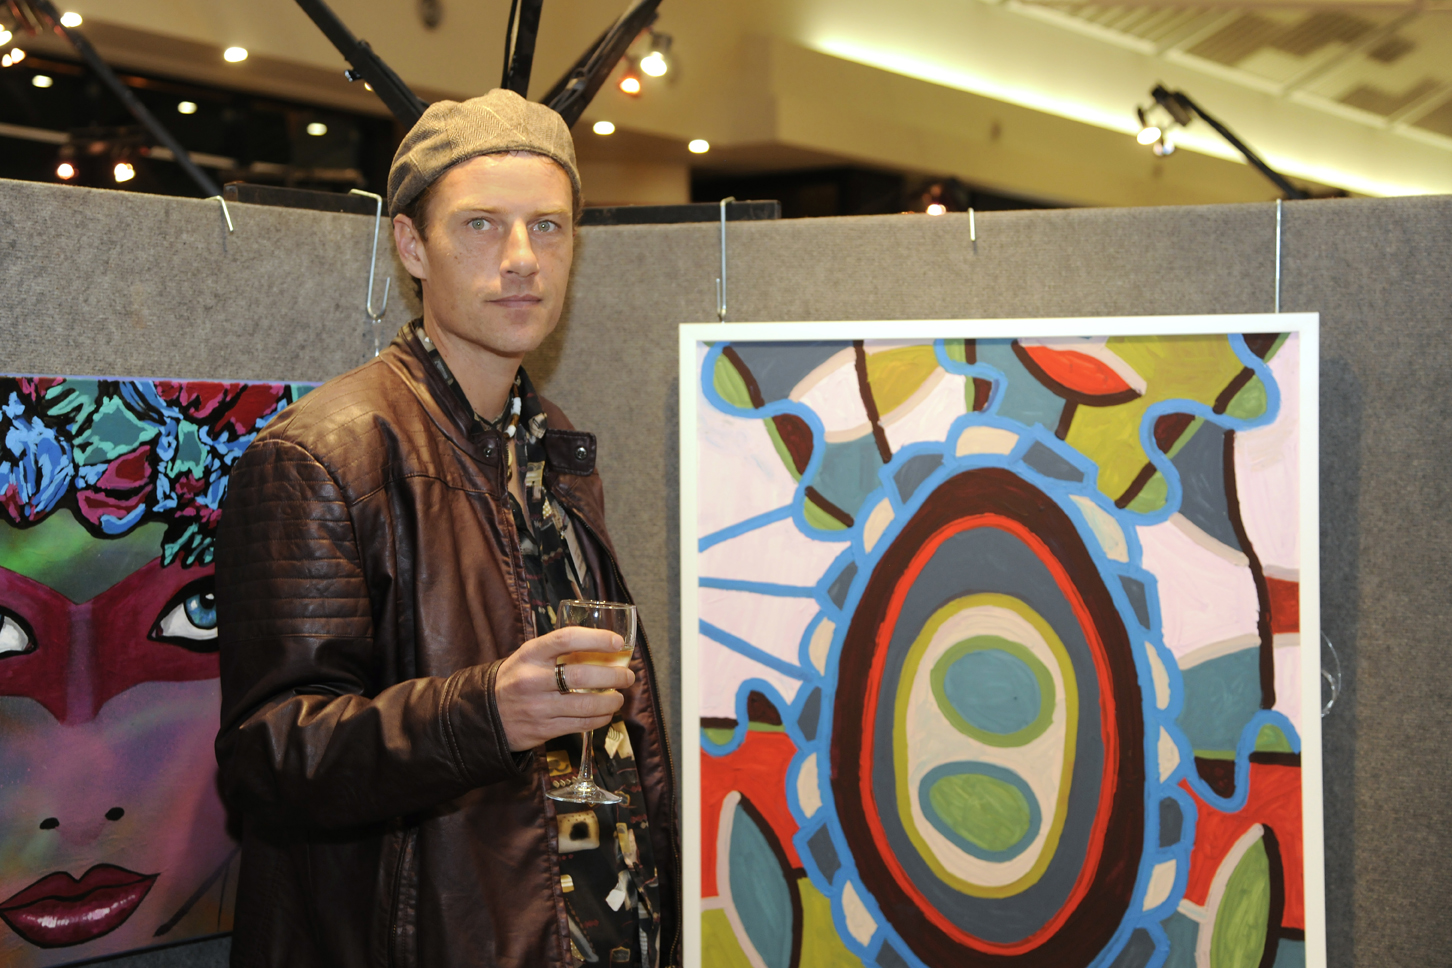 Rafal Markowski and his artwork. Picture: Chris Kershaw